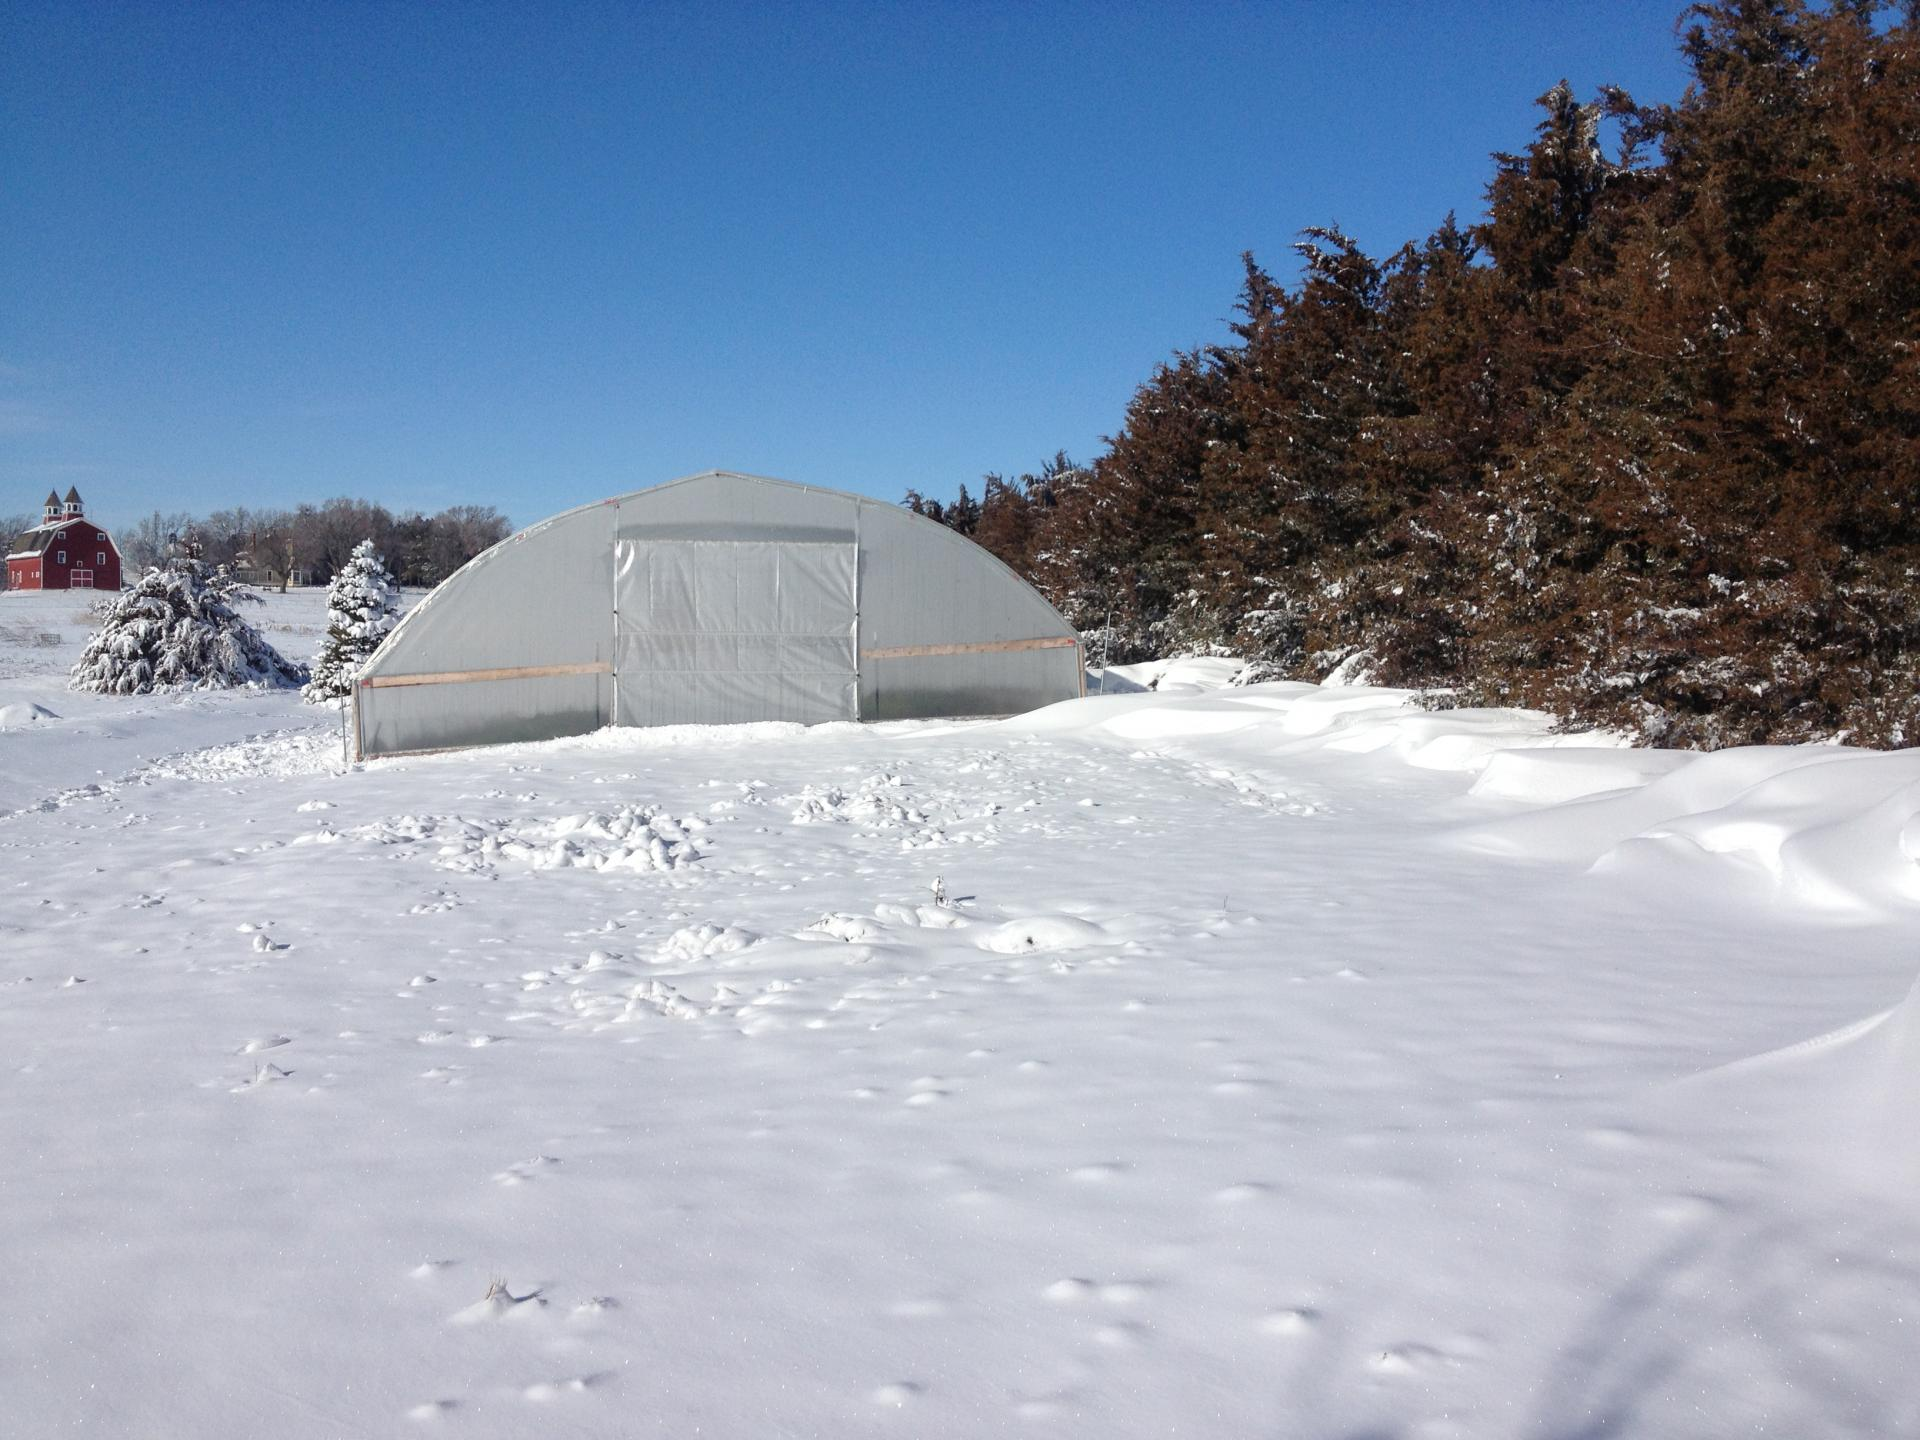 hoophouse in the snow